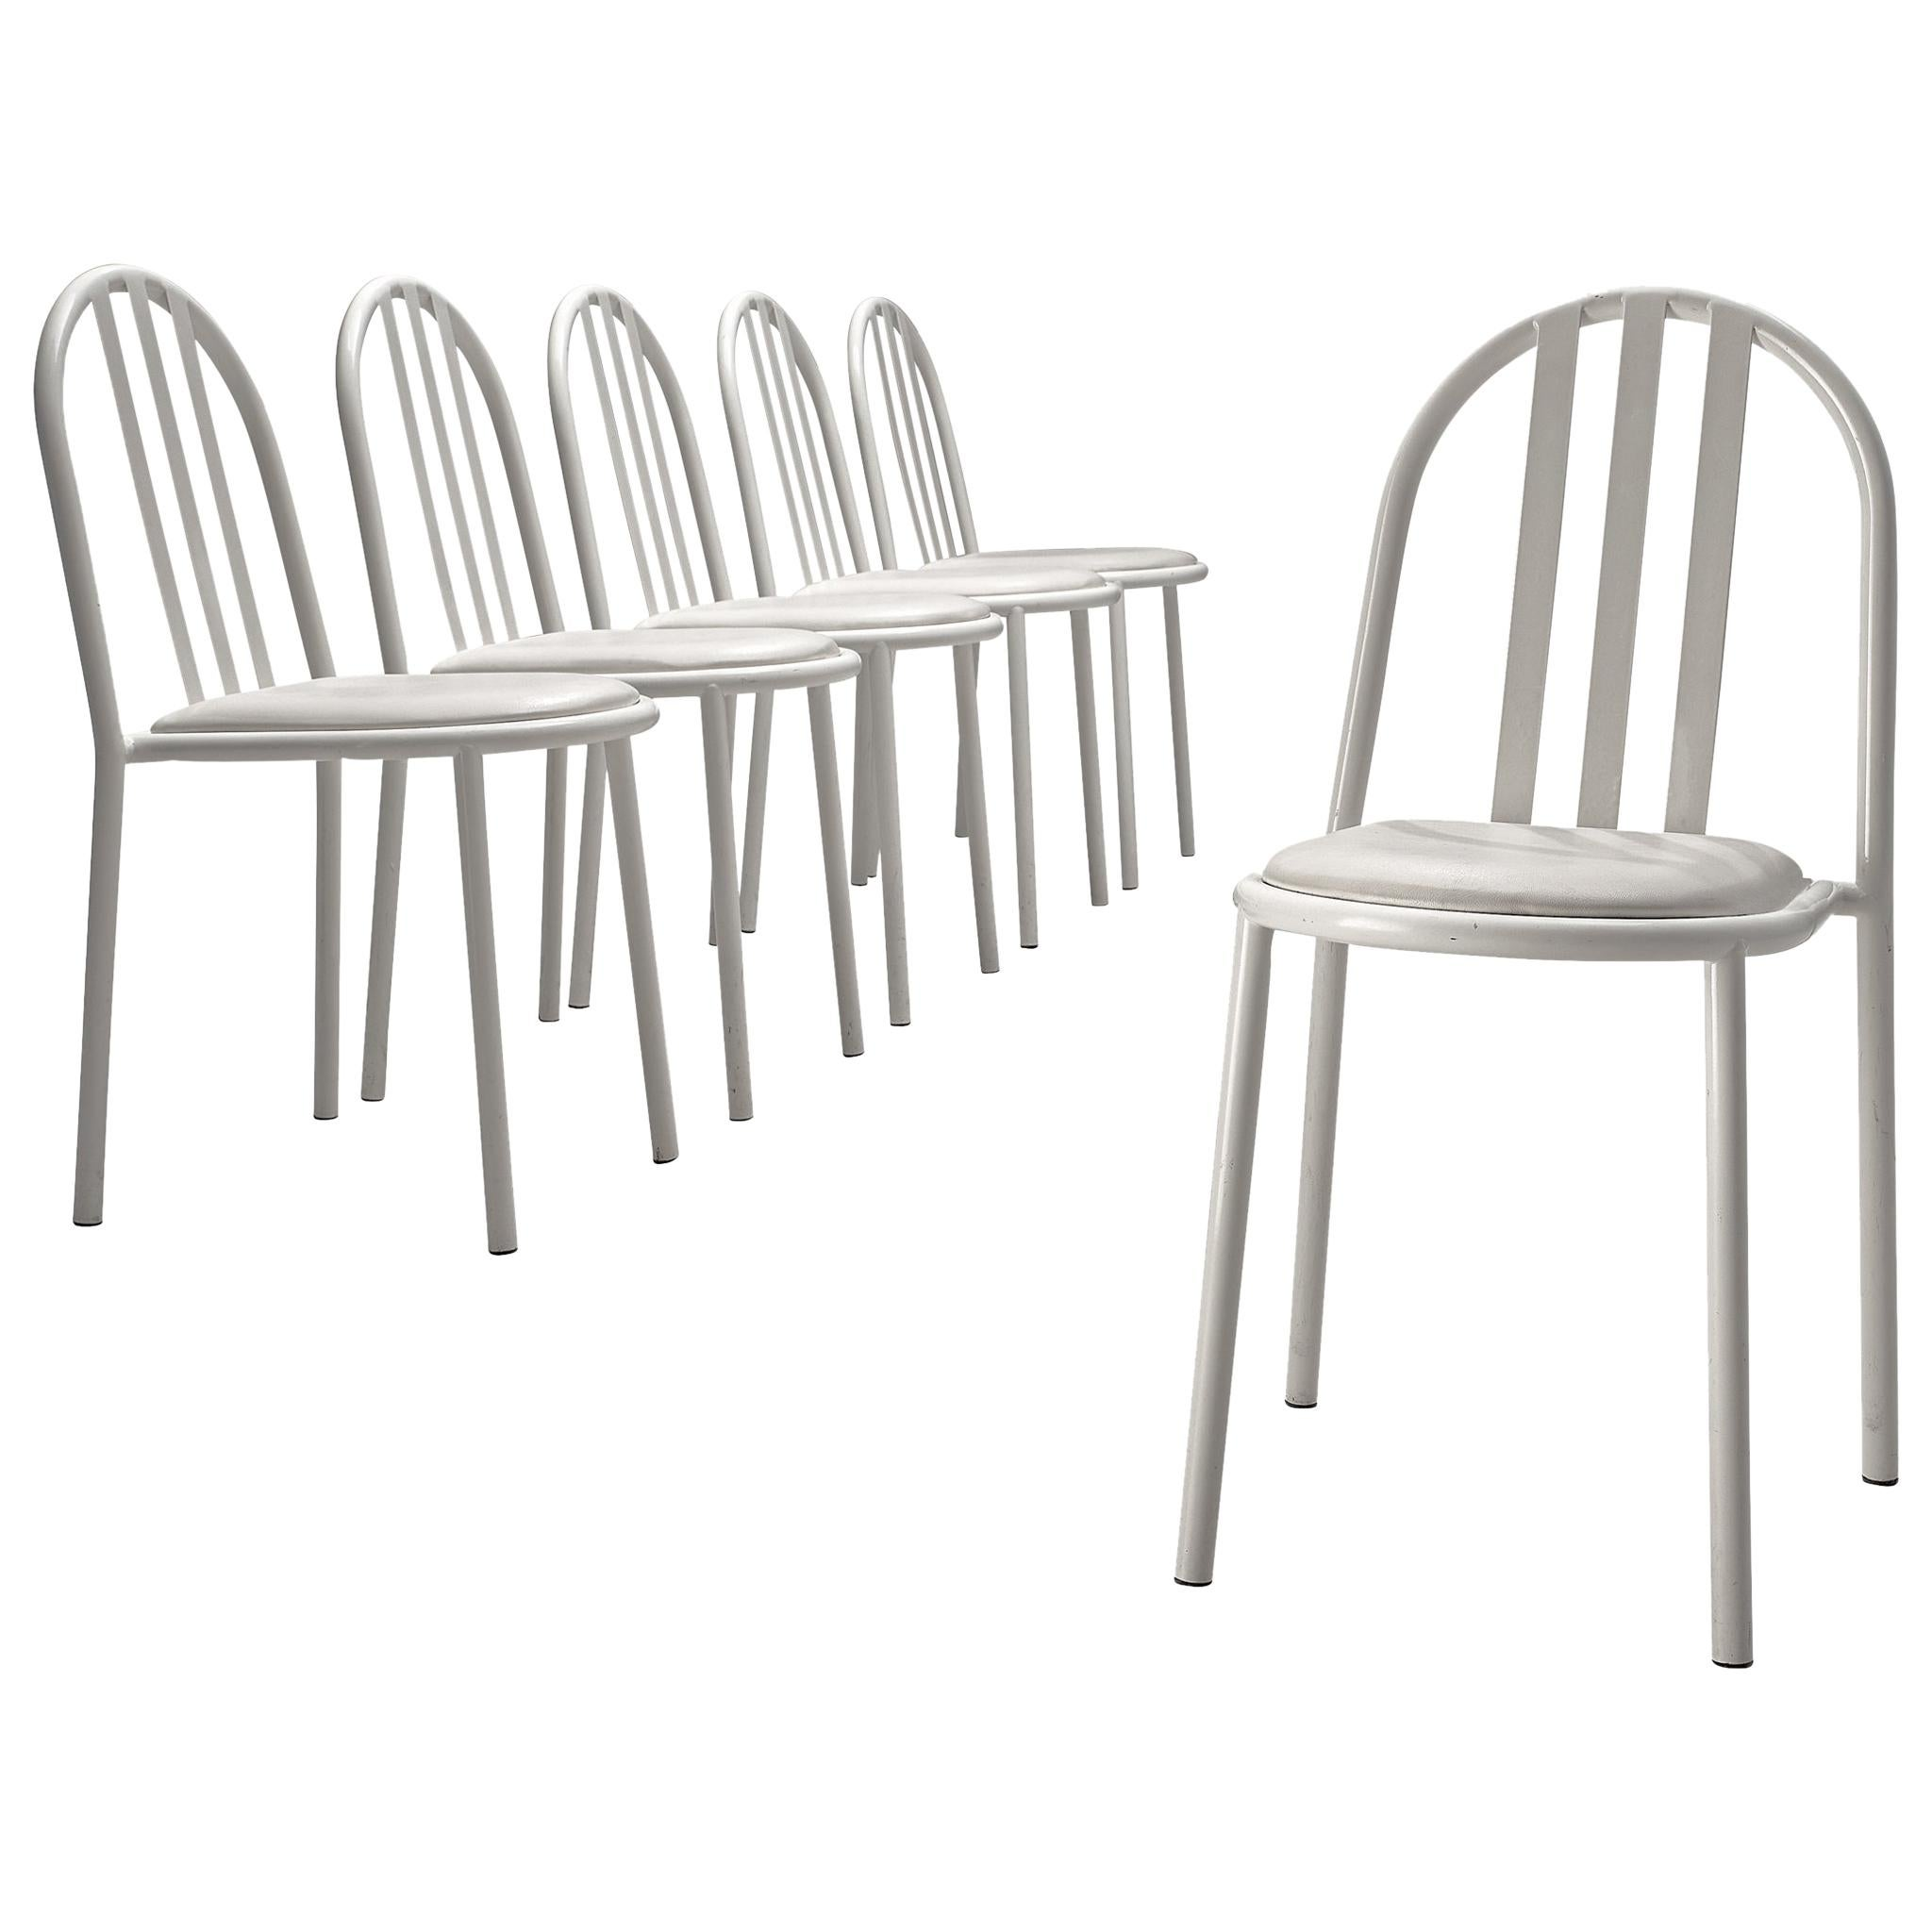 Set of Six White Tubular Steel Chairs by Robert Mallet Stevens